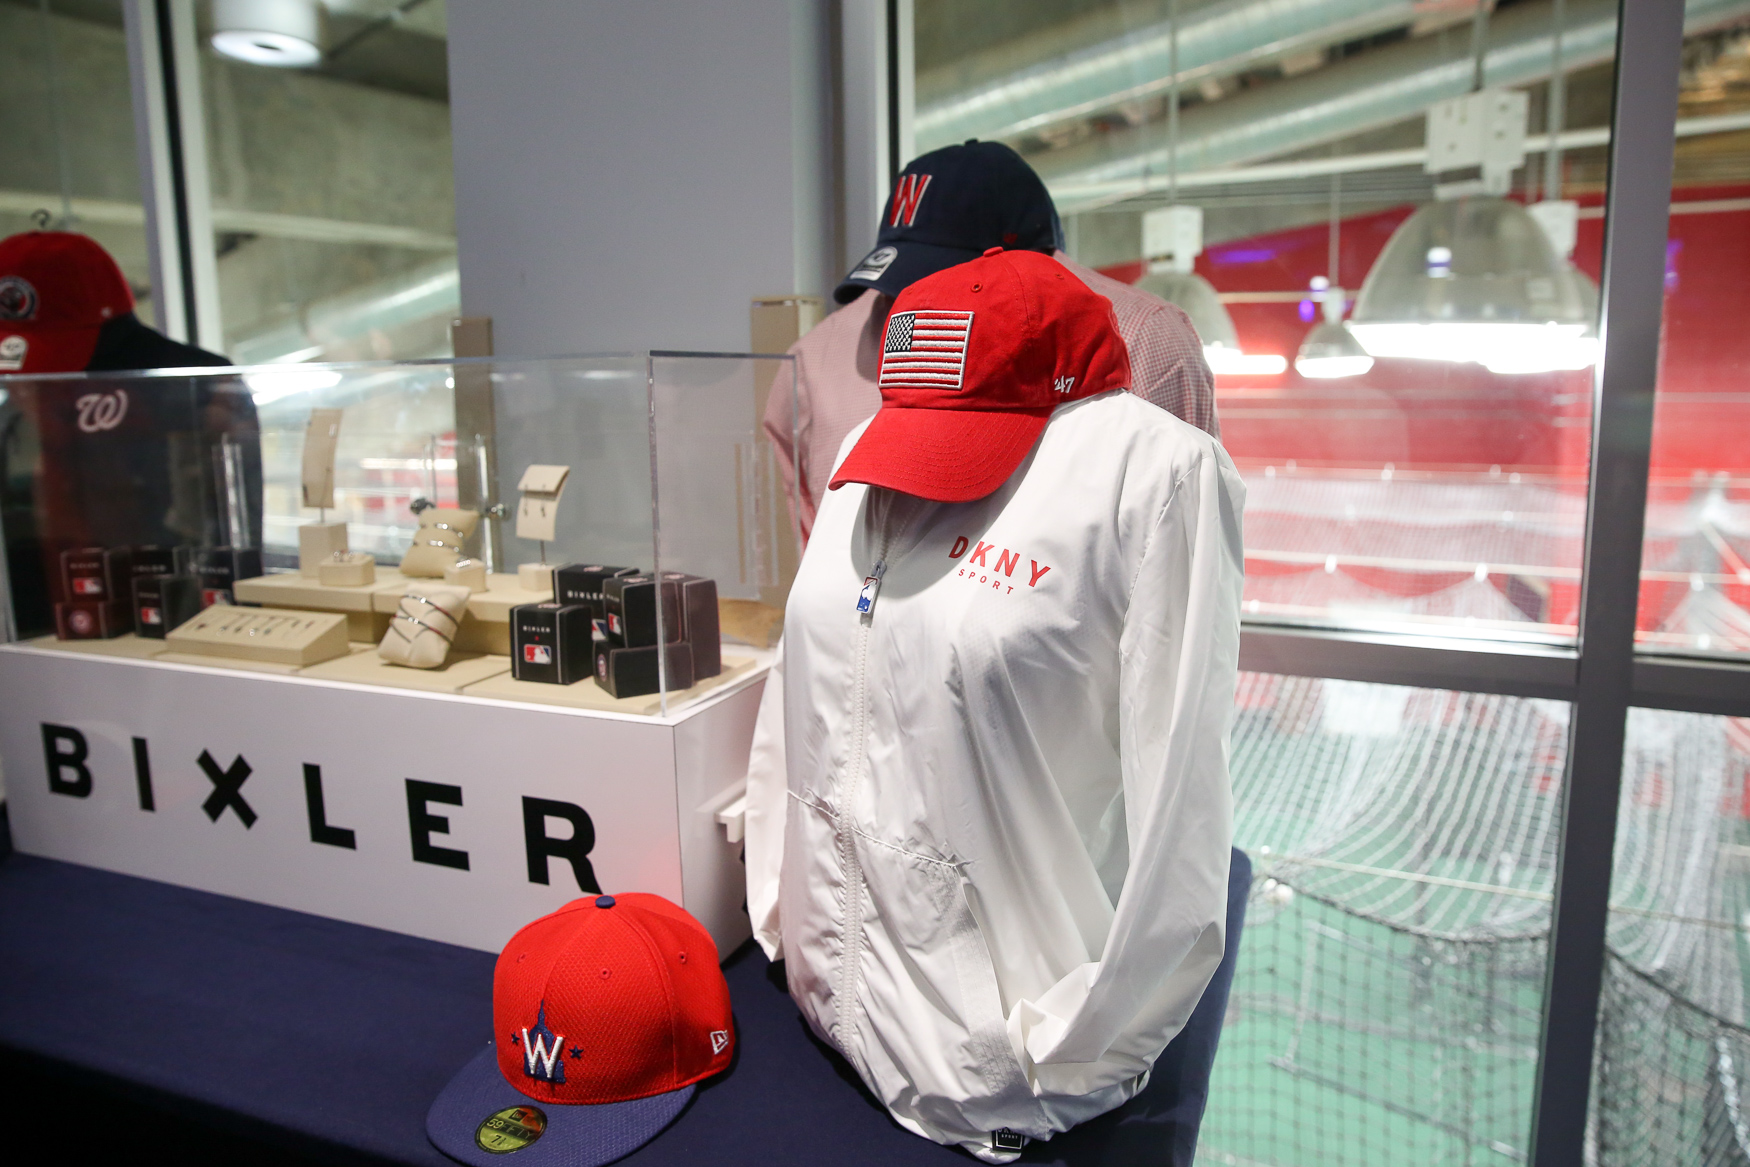 The Nationals introduced new branding and logos this winter and the new apparel will feature an updated look. (Amanda Andrade-Rhoades/DC Refined)